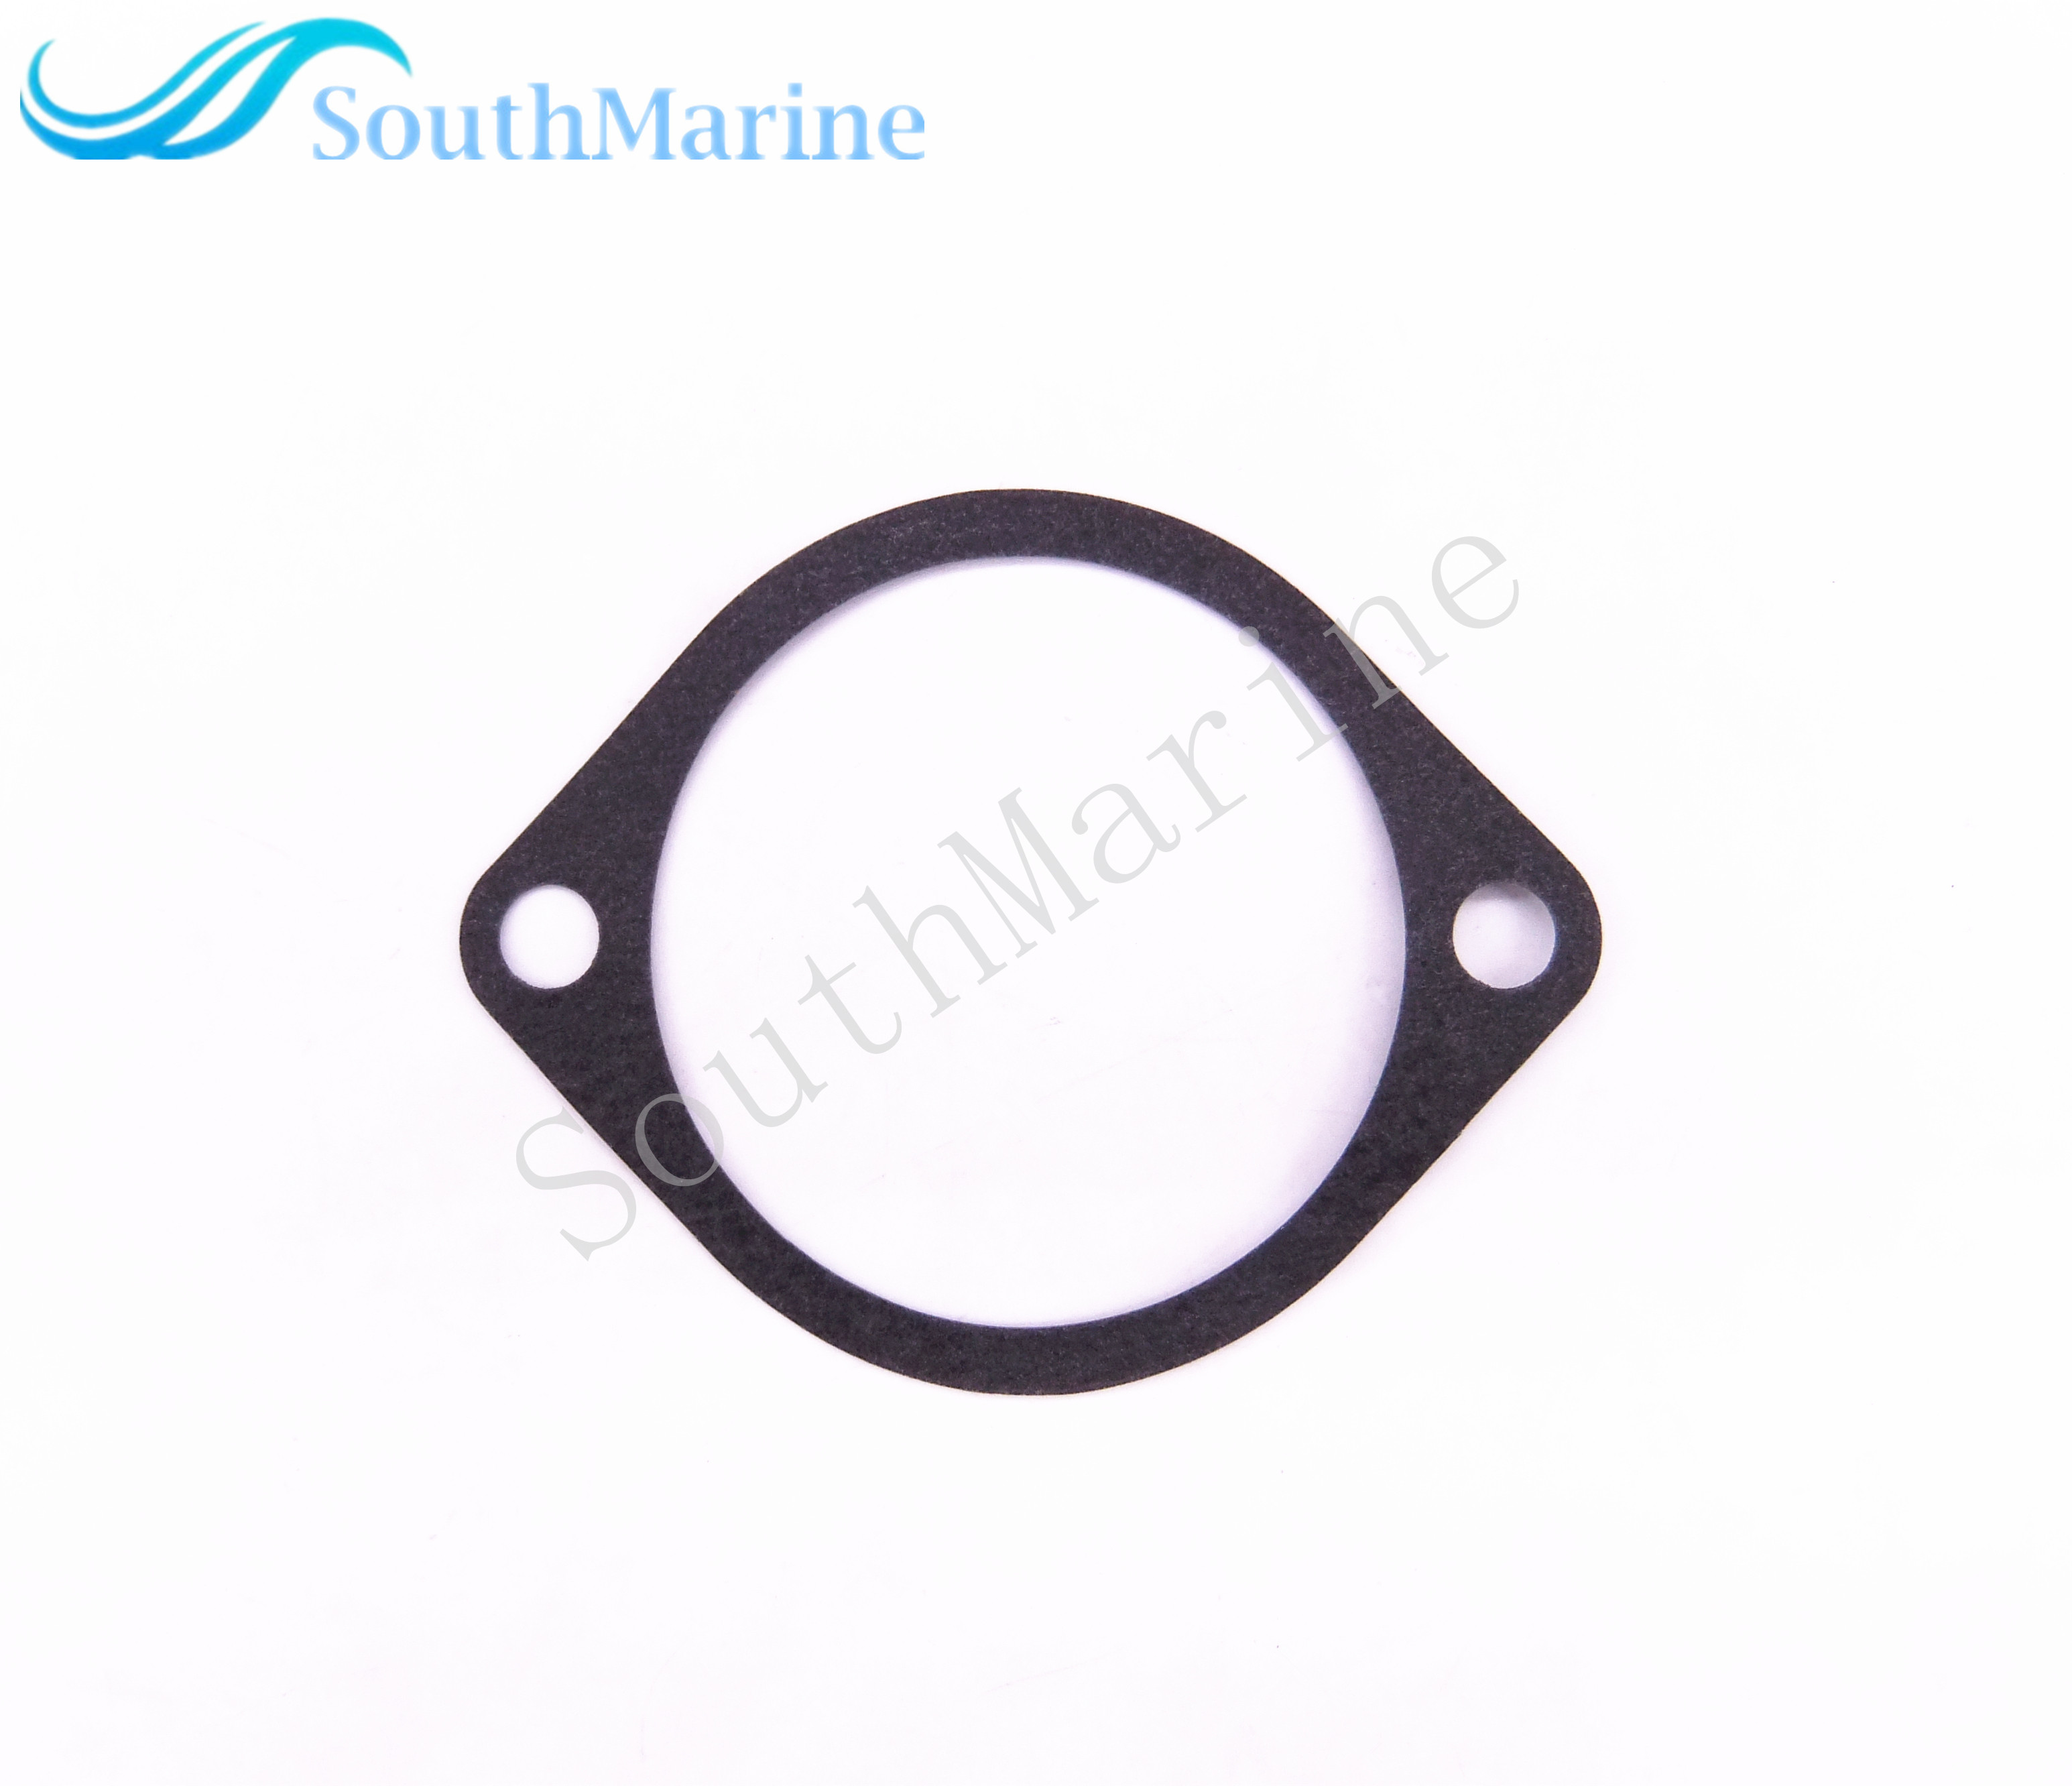 Outboard Engine 3B2-01214-0 3B201-2140M Crank Case Head Gasket for Tohatsu Nissan 2-Stroke 6HP 8HP 9.8HP Outboard Engine